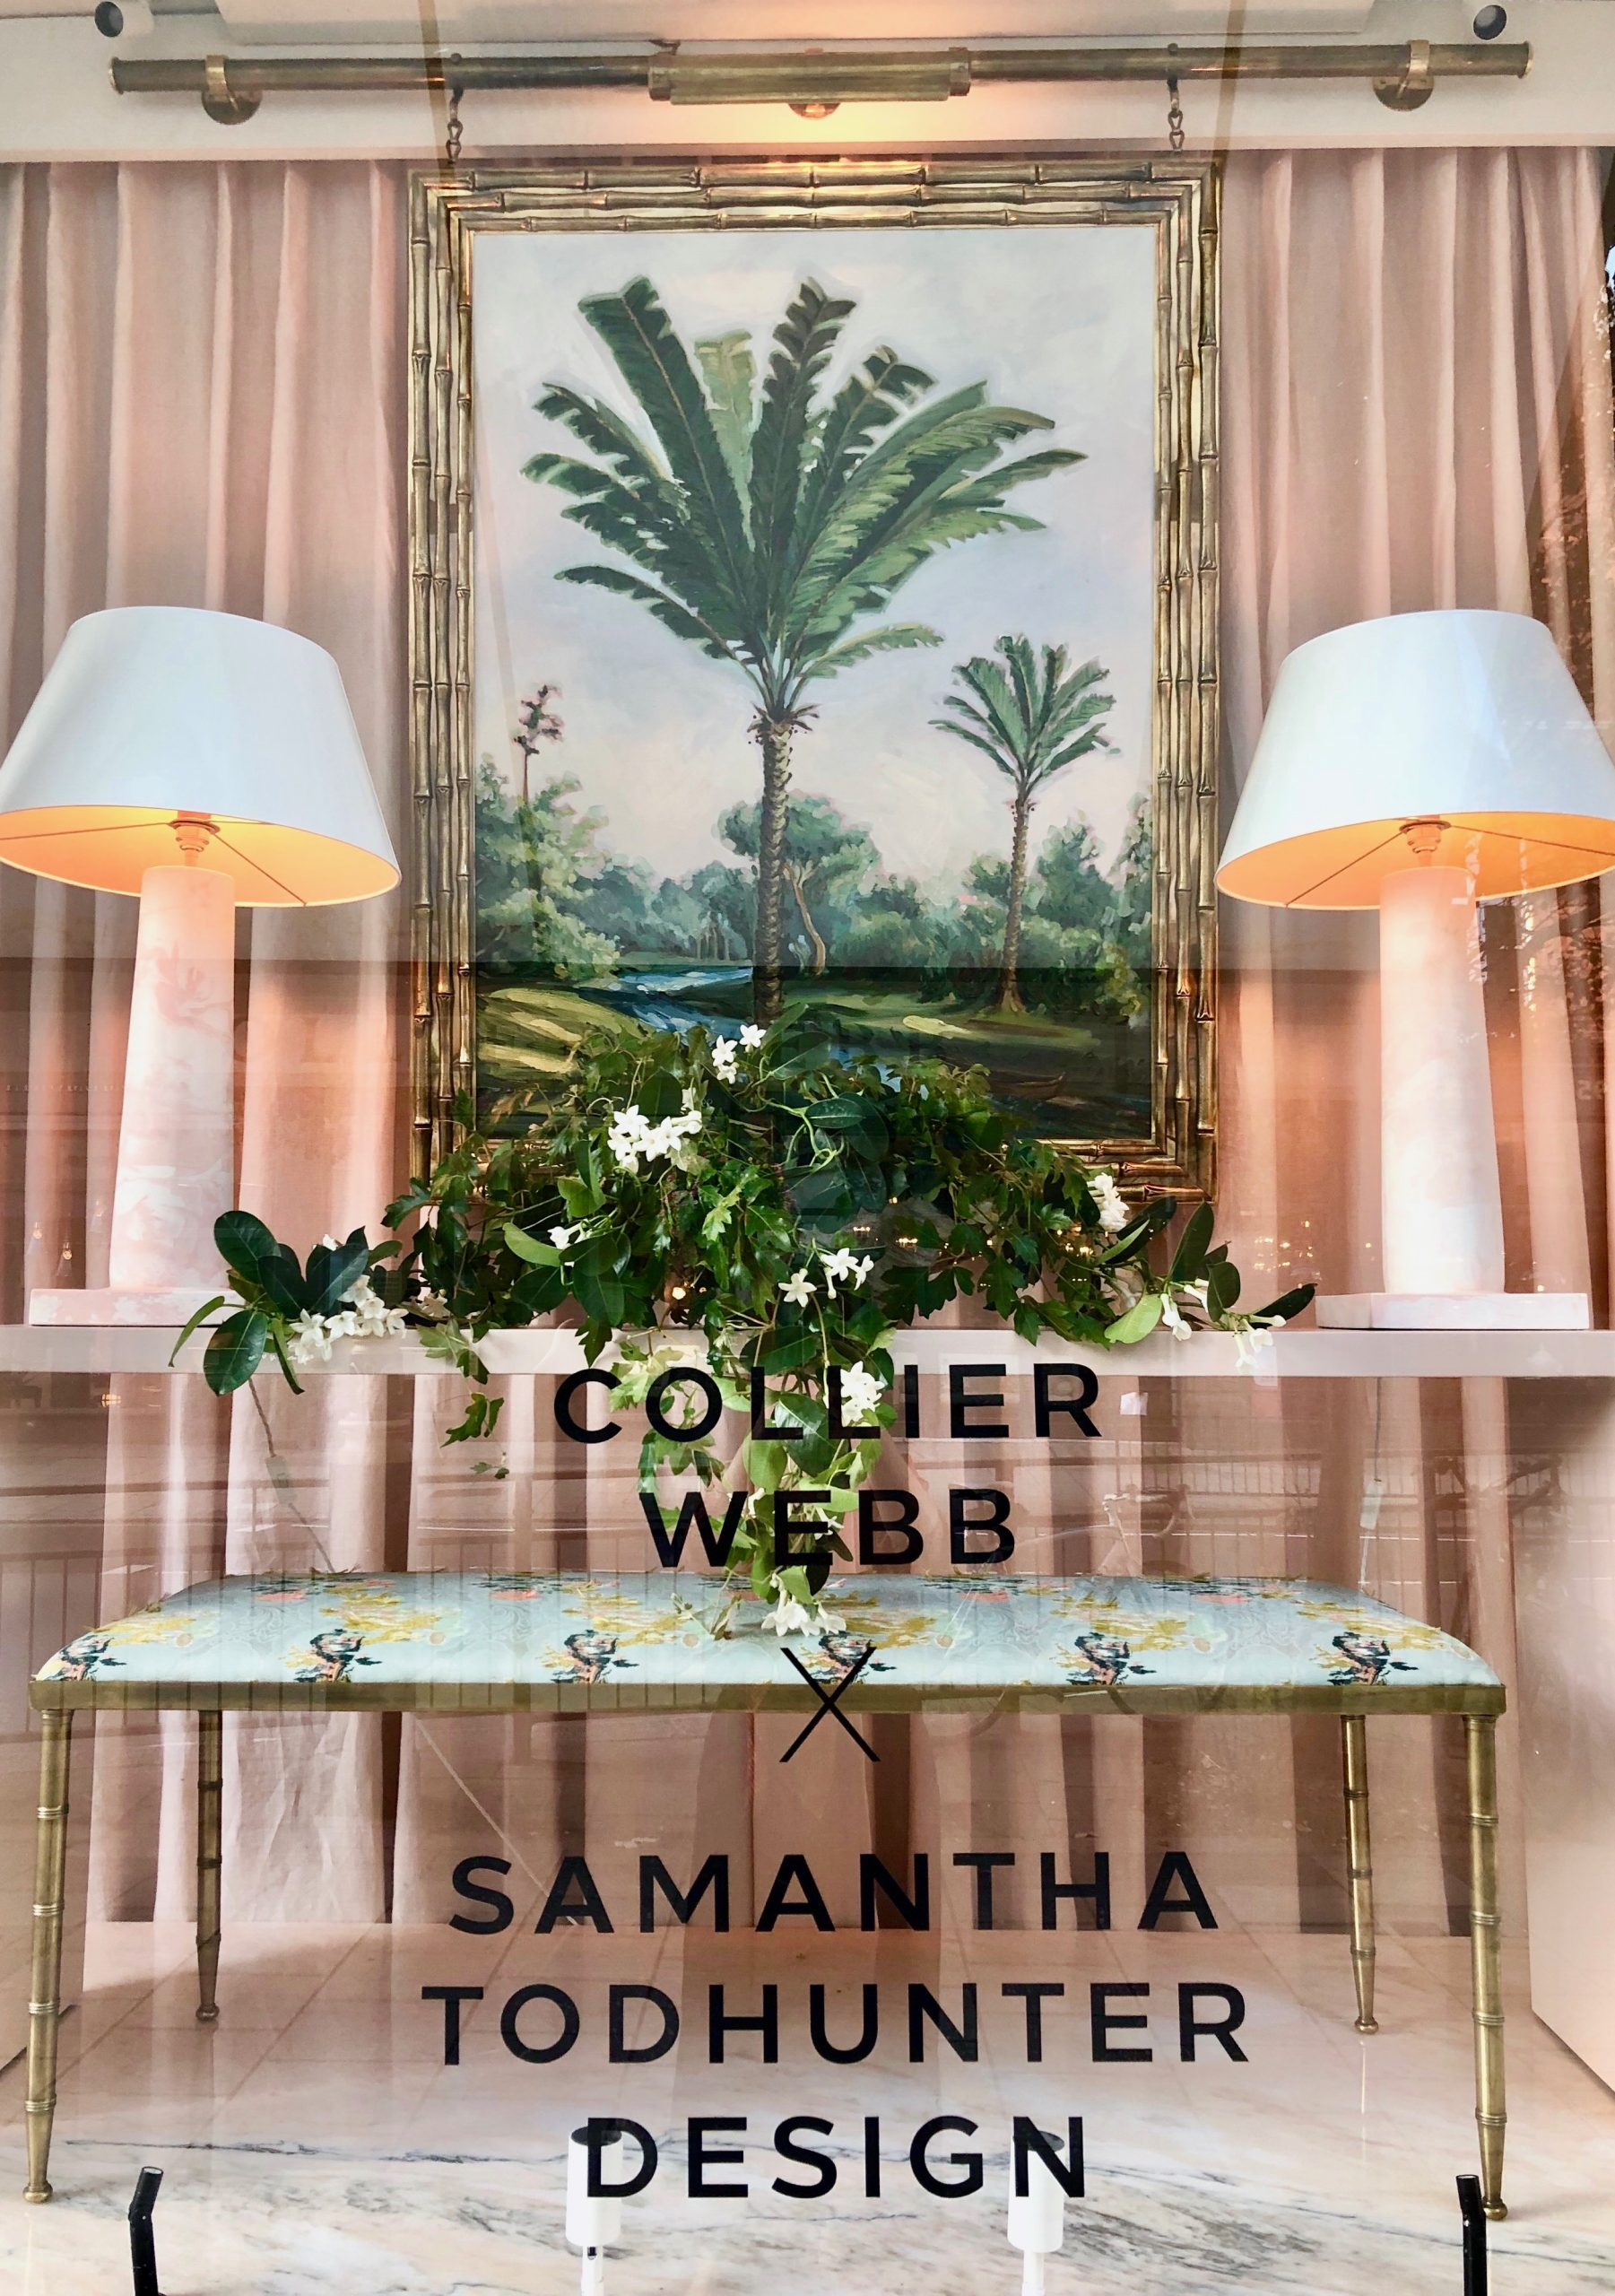 Samantha Todhunter Design X Collier Webb